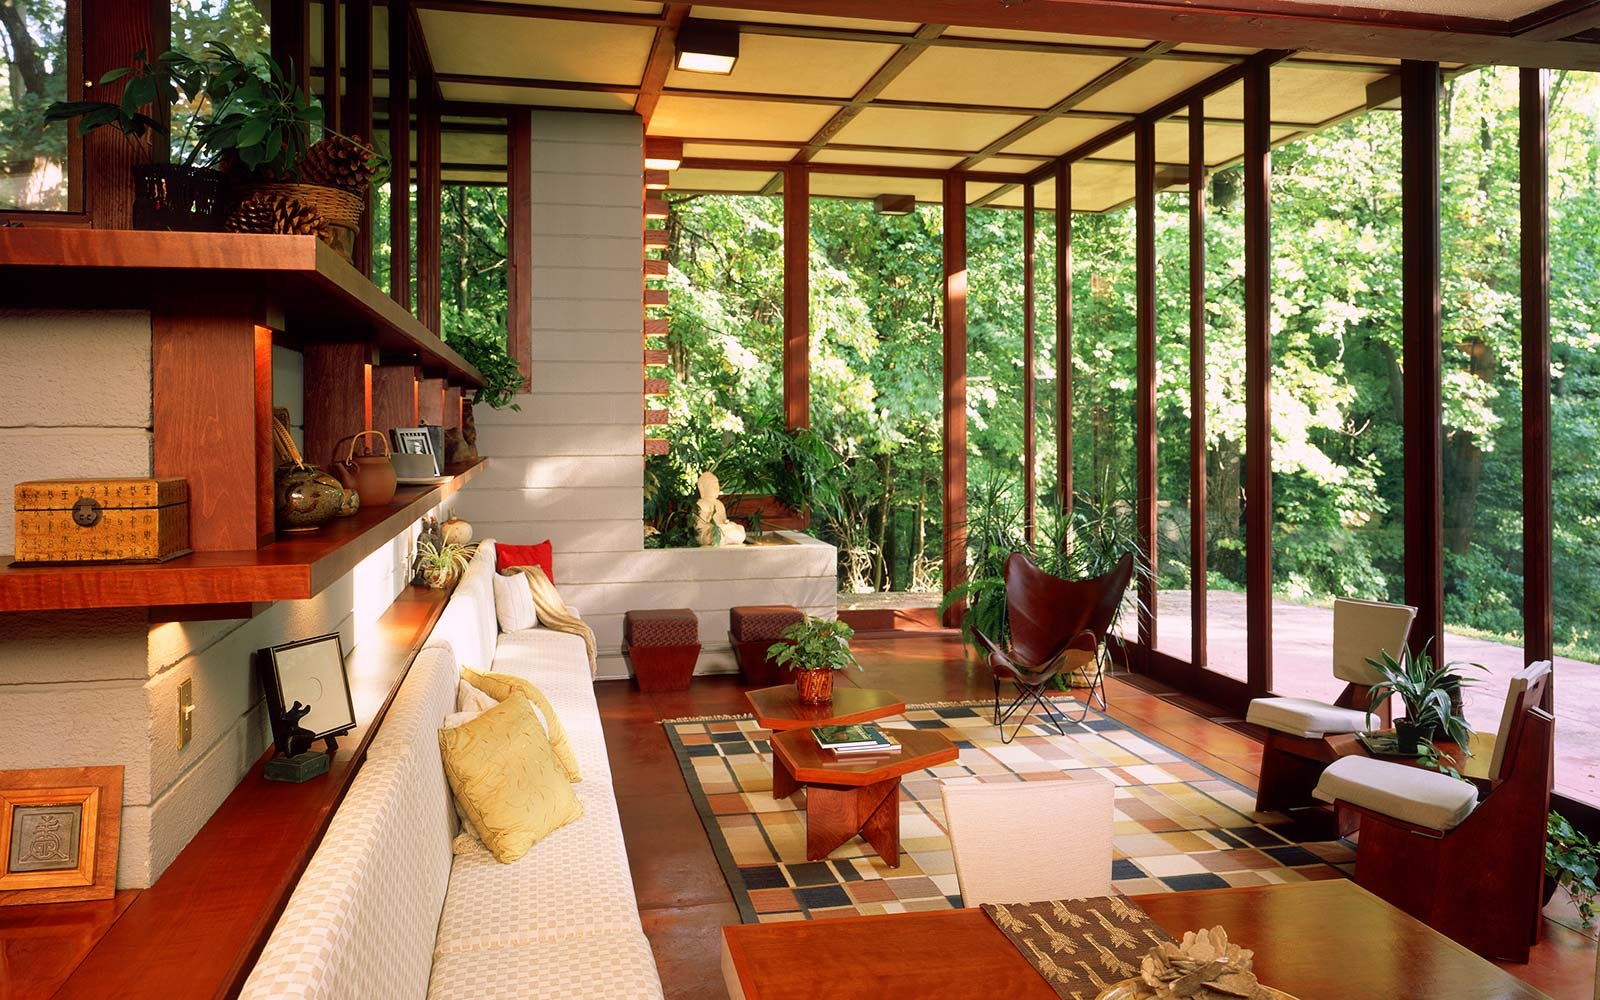 10 must see houses designed by architect frank lloyd wright travel leisure. Black Bedroom Furniture Sets. Home Design Ideas